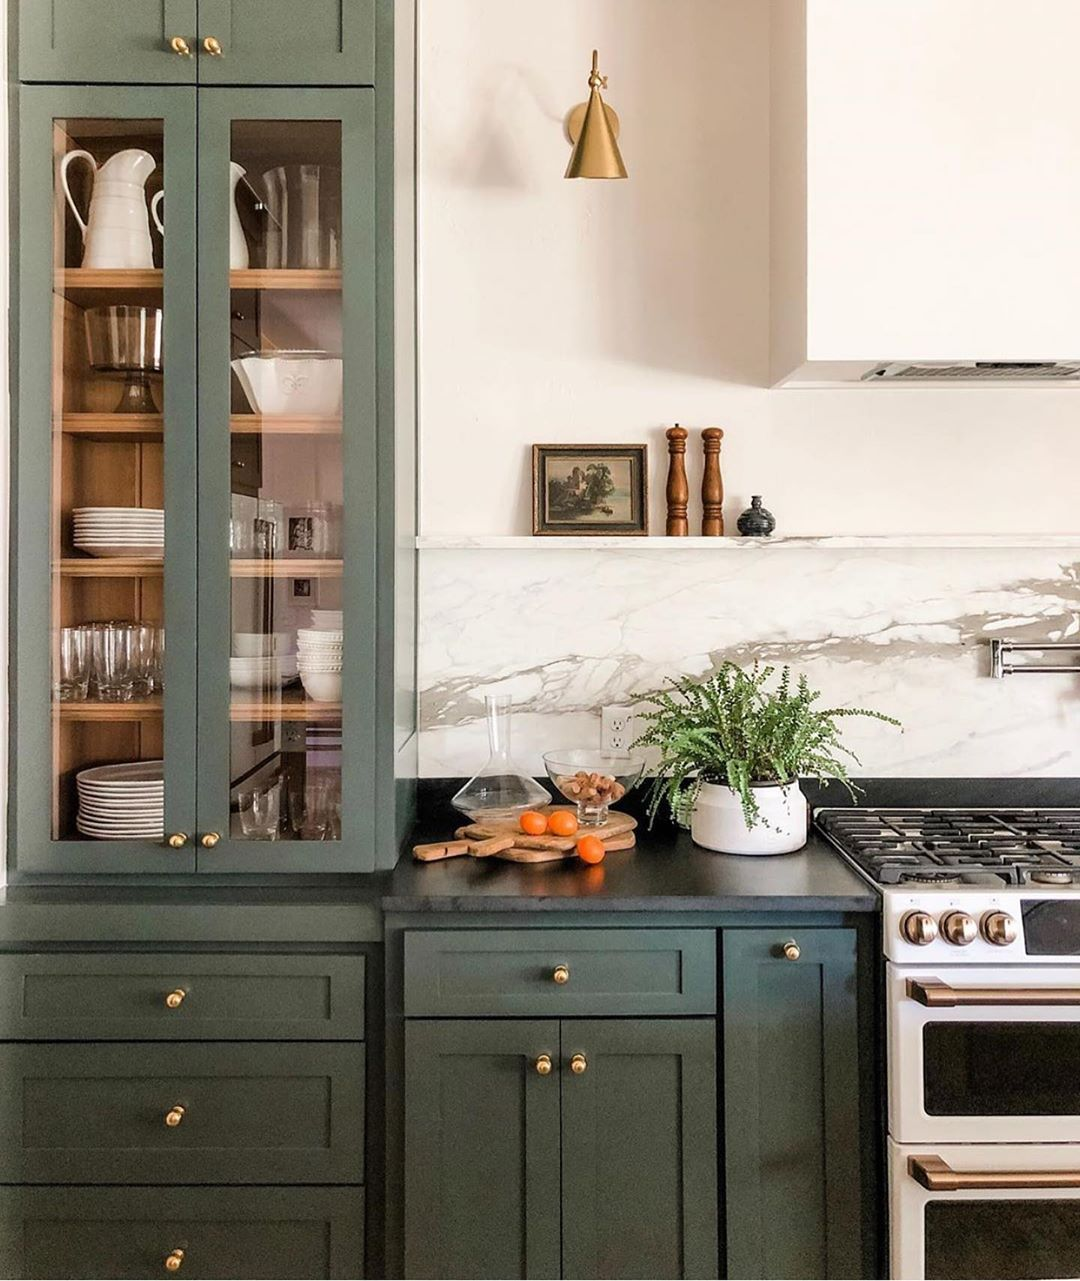 You Know We Love A Green Kitchen Here At Juniper Home But This Might Be The Best One Yet We Are V Green Kitchen Cabinets Diy Kitchen Remodel Kitchen Interior